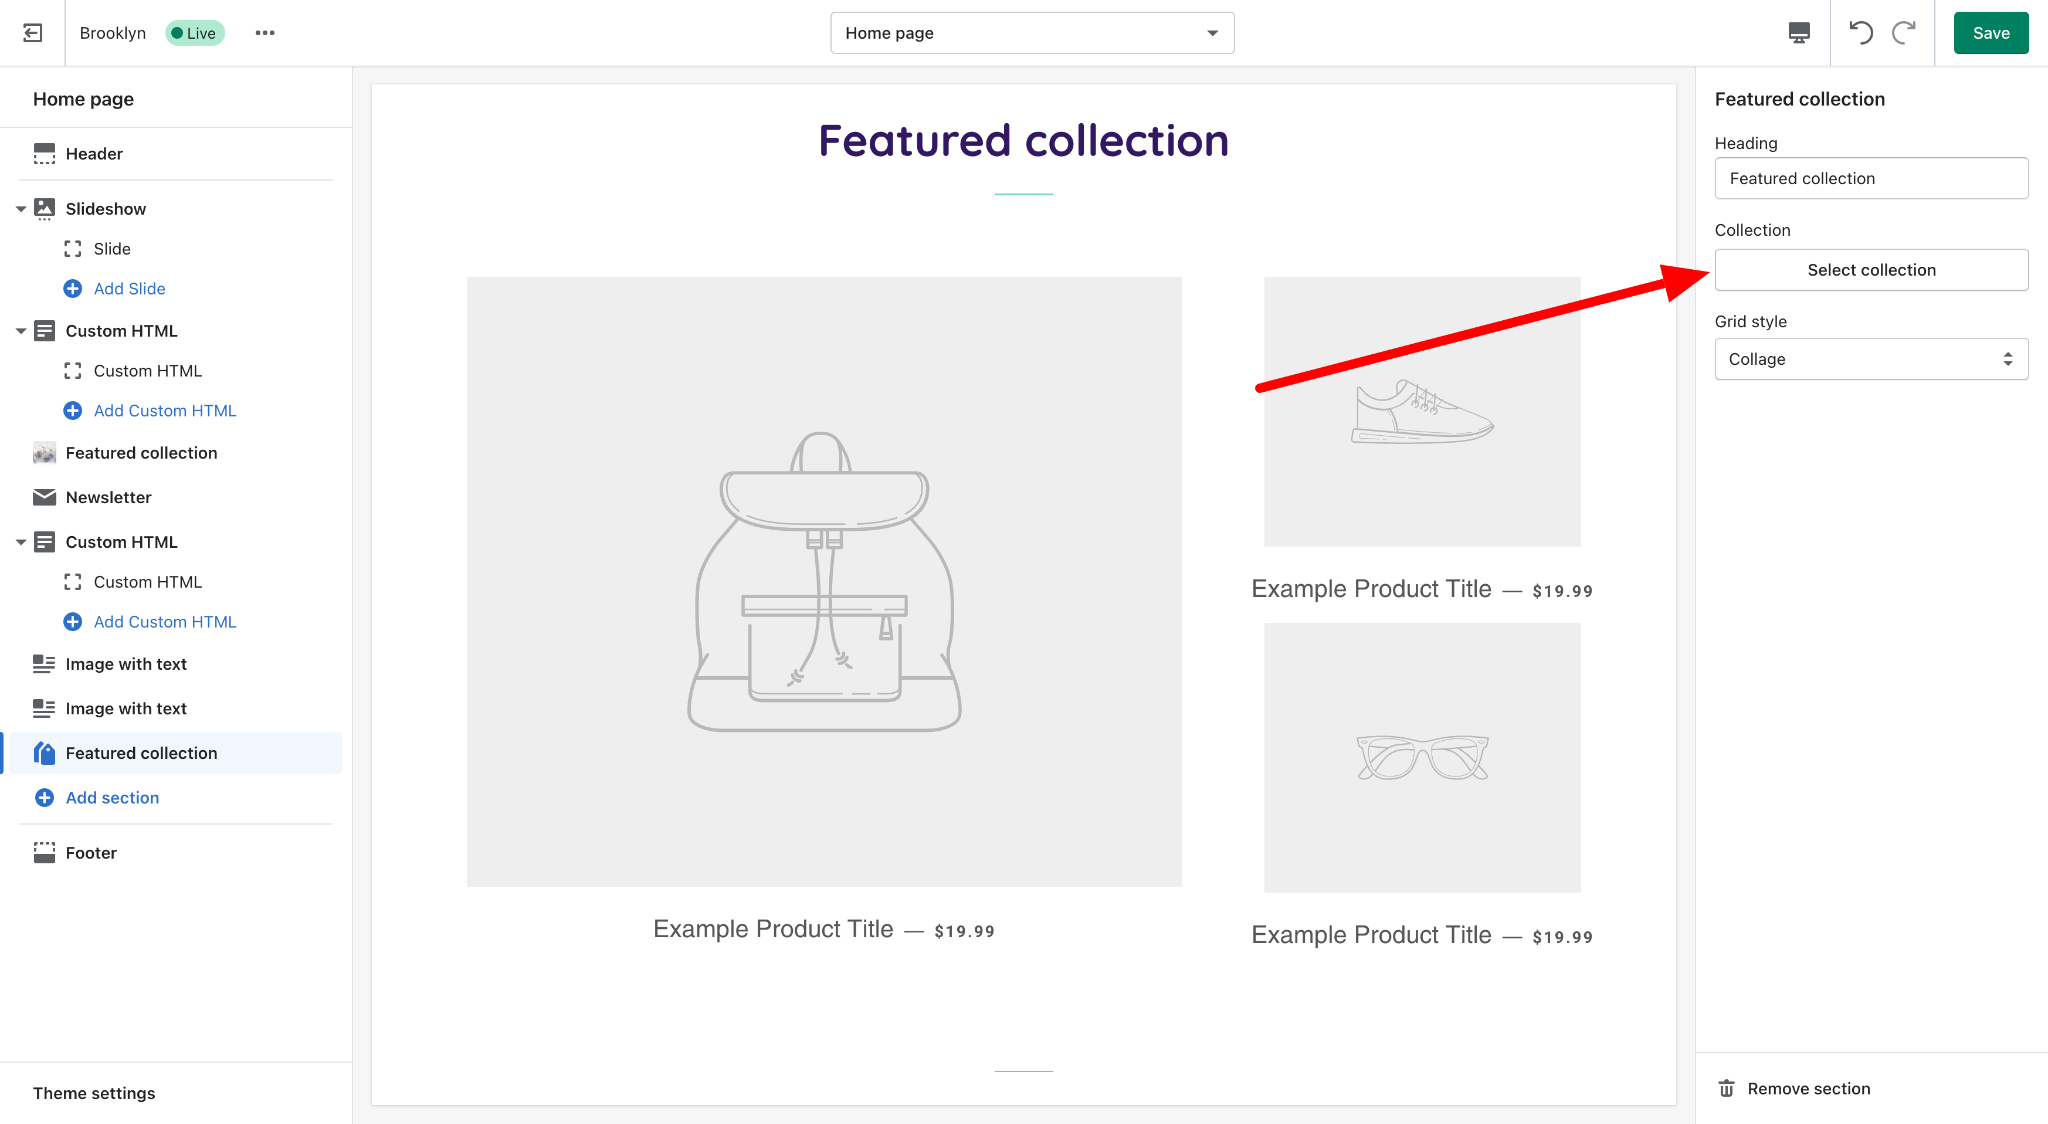 shopify dashboard select collection to feature